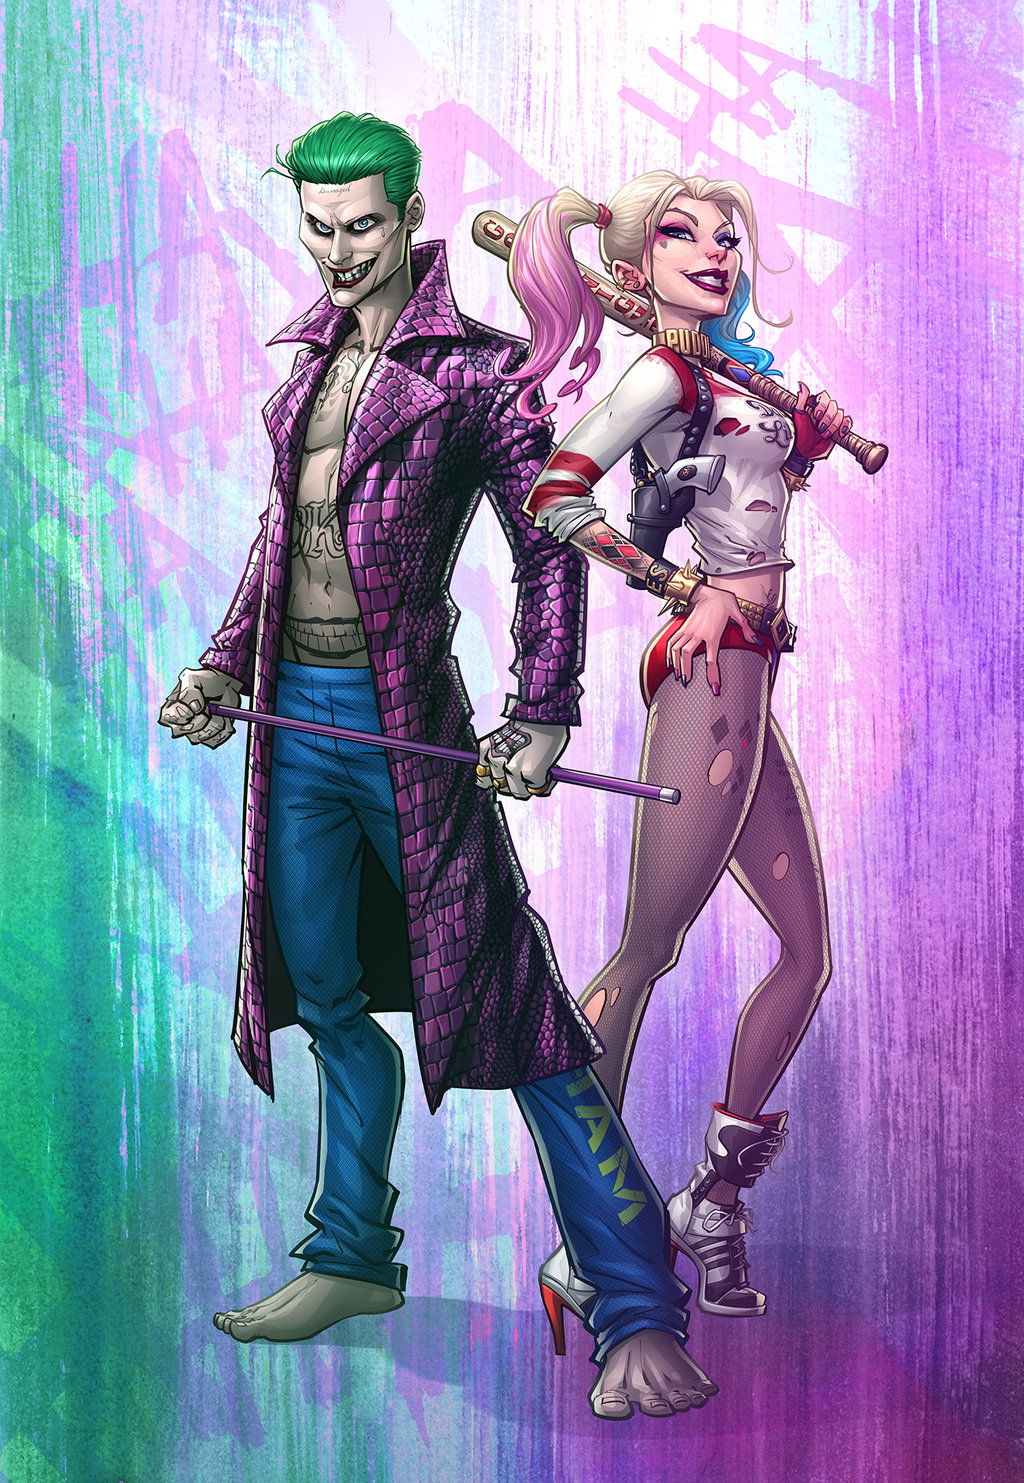 the_joker_and_harley_quinn_by_patrickbro